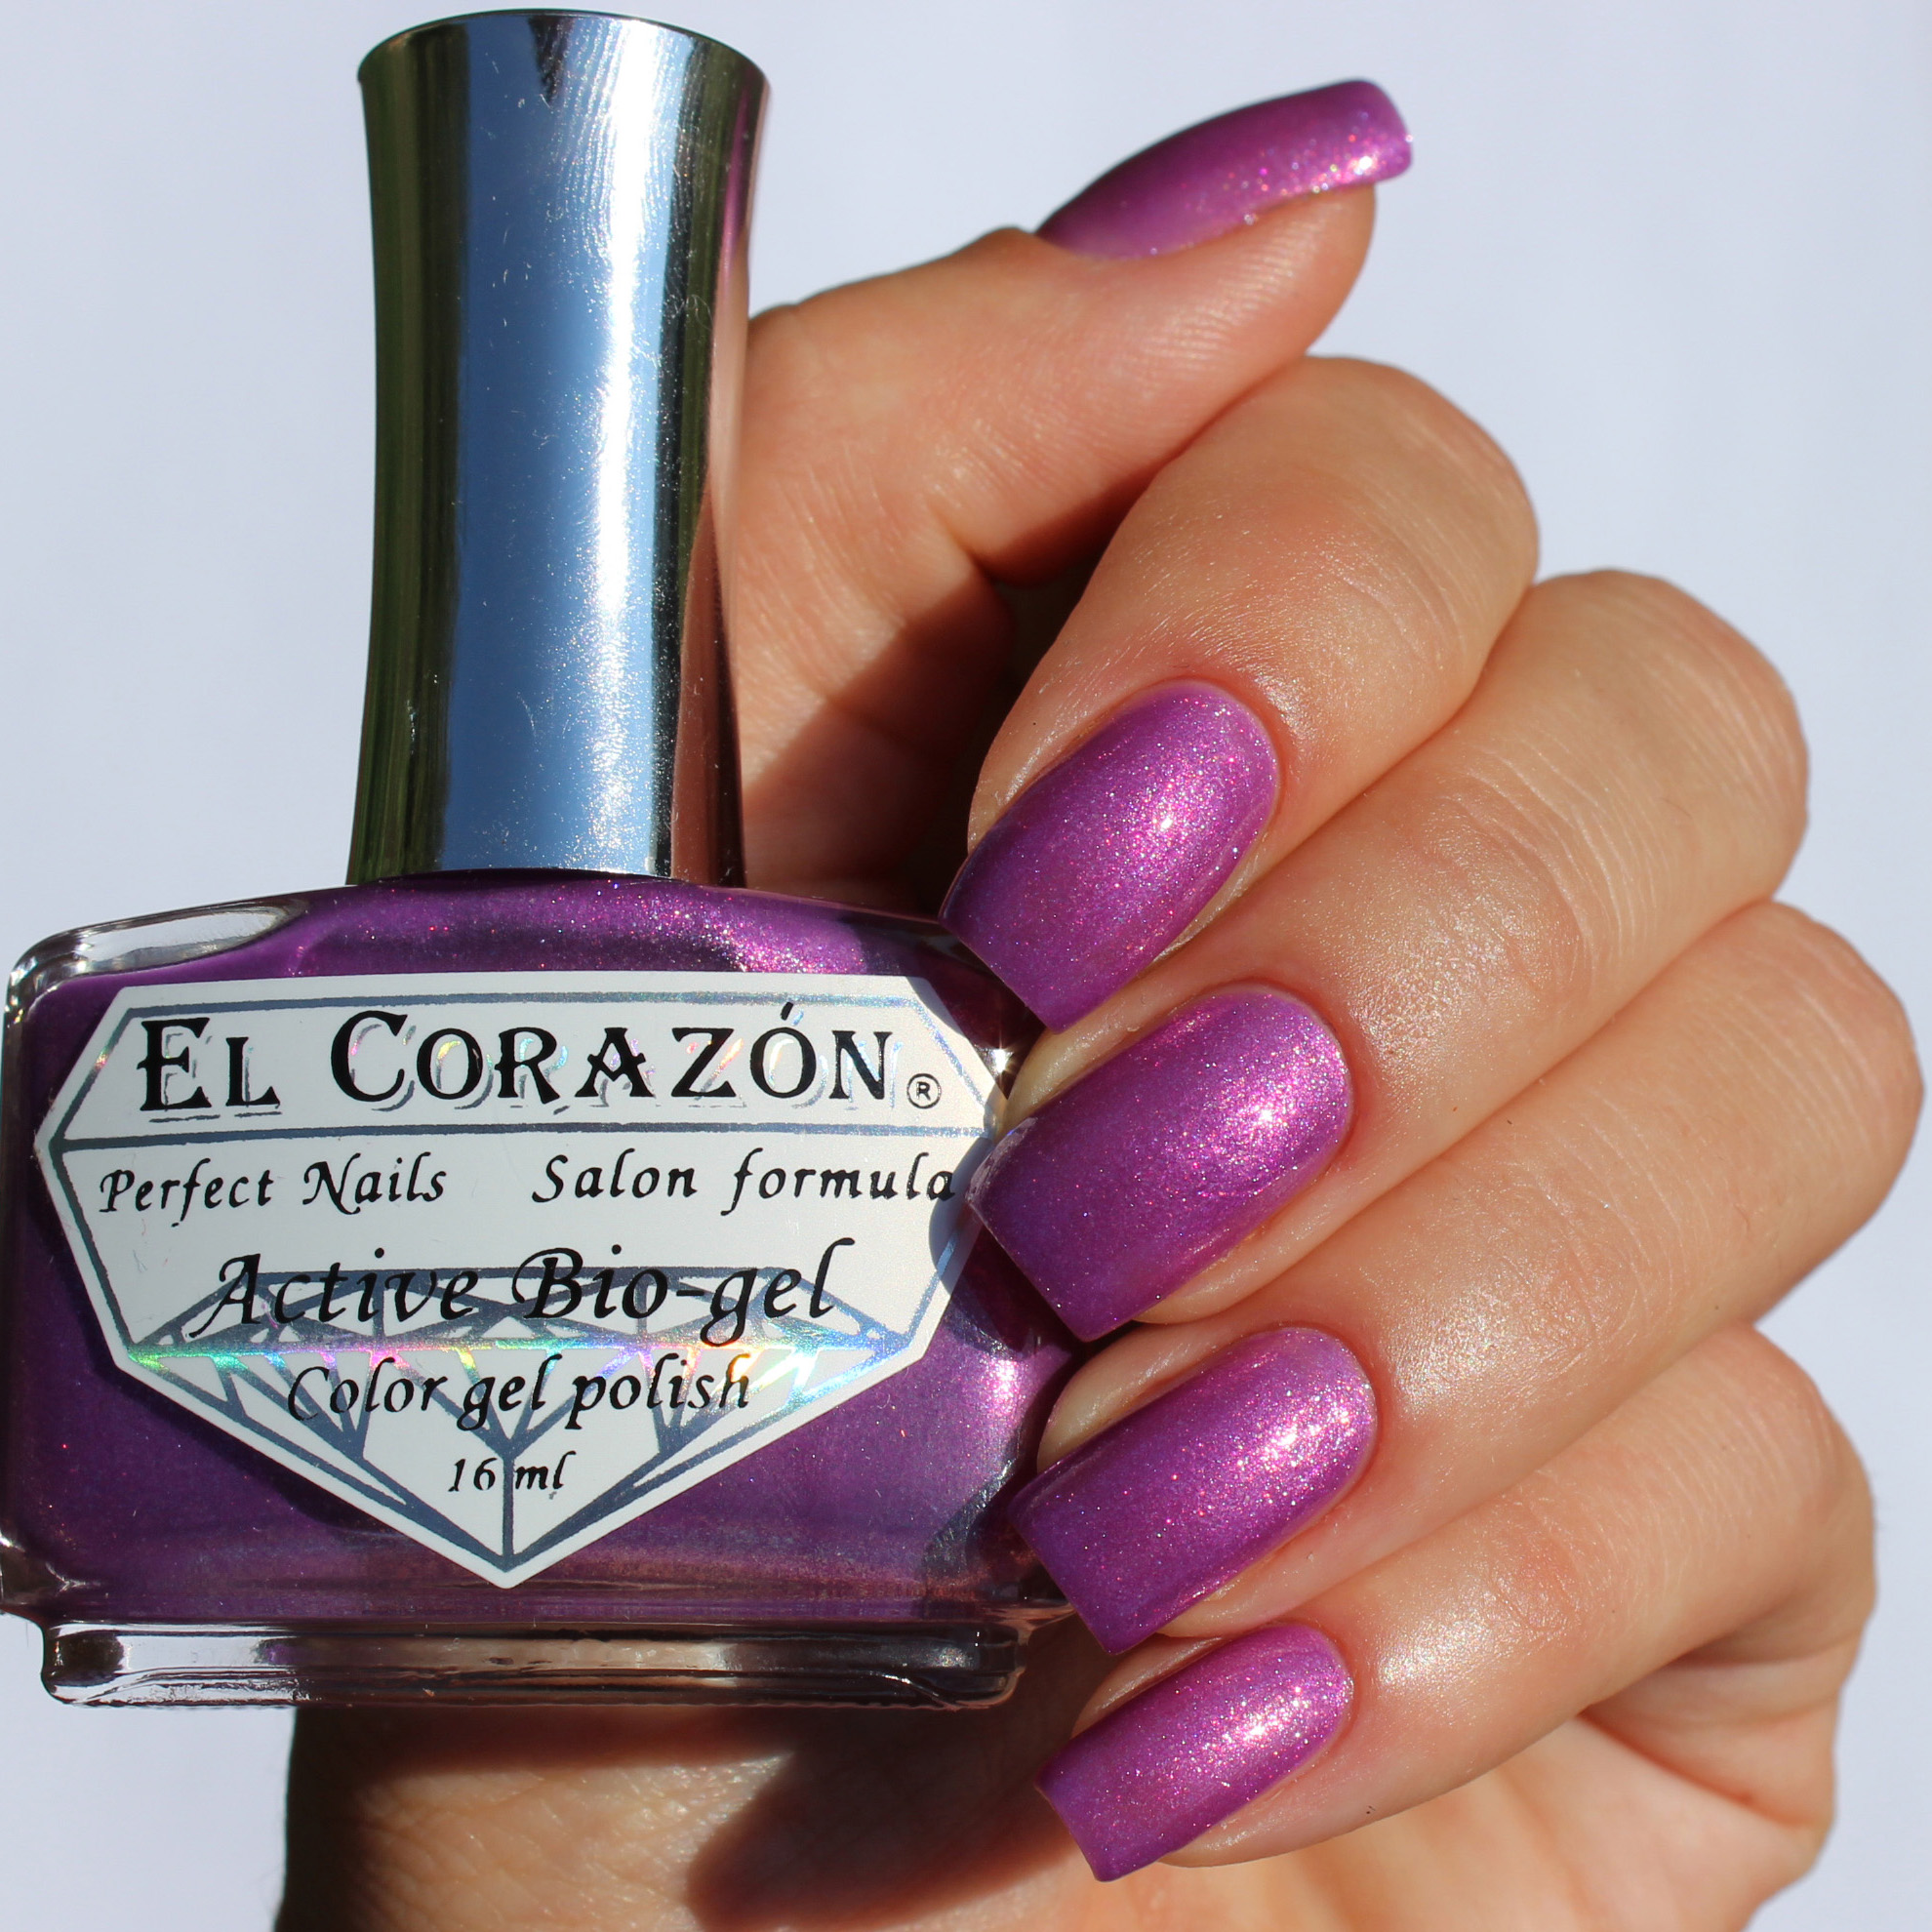 El Corazon Active Bio-gel № 423/552 Magic Purple Charm